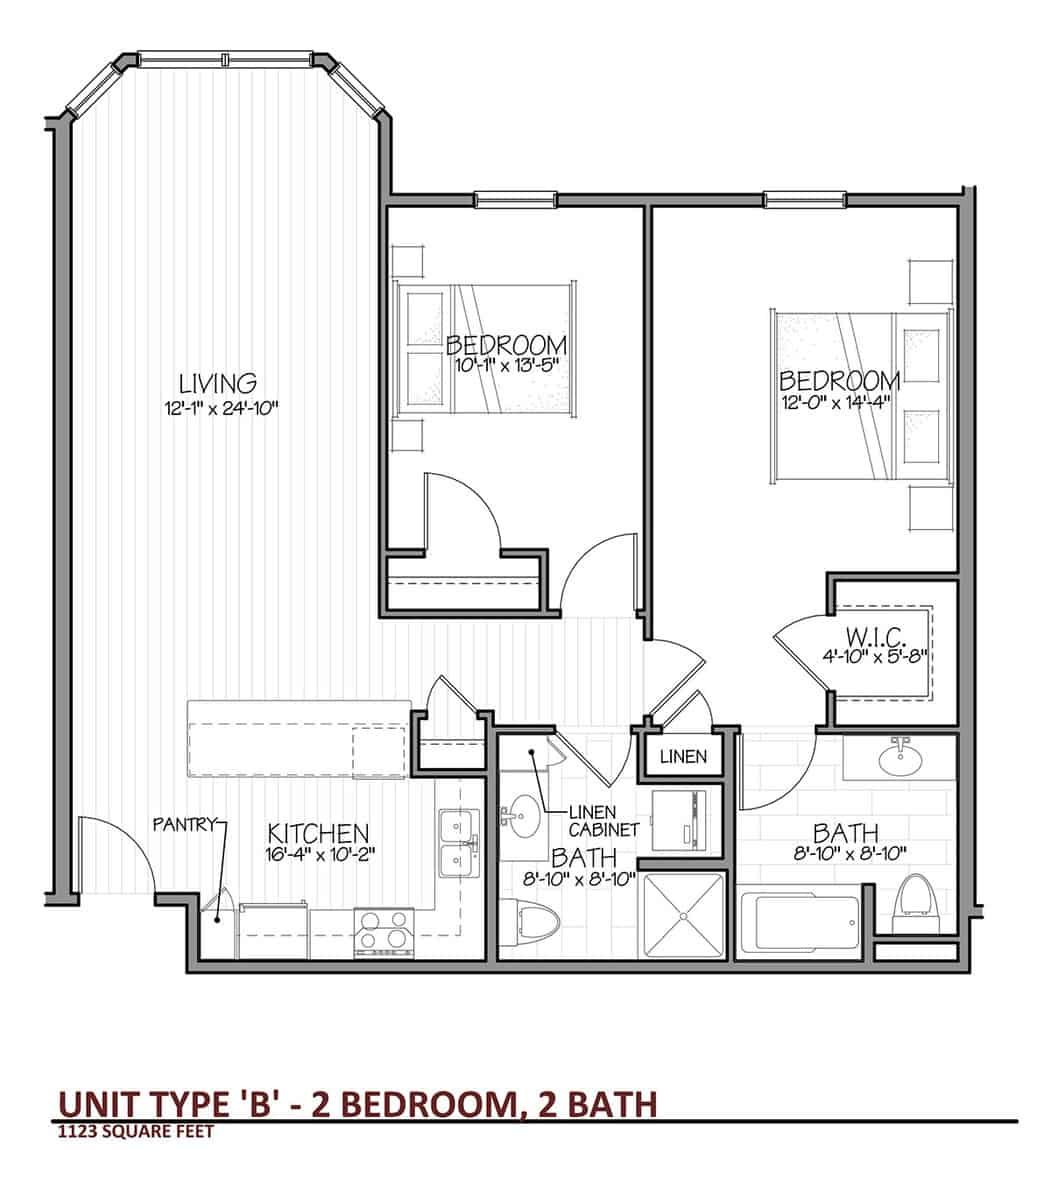 1109 Autumn Pond Building 6 000 Unit Marketingaec Plans And Diagram